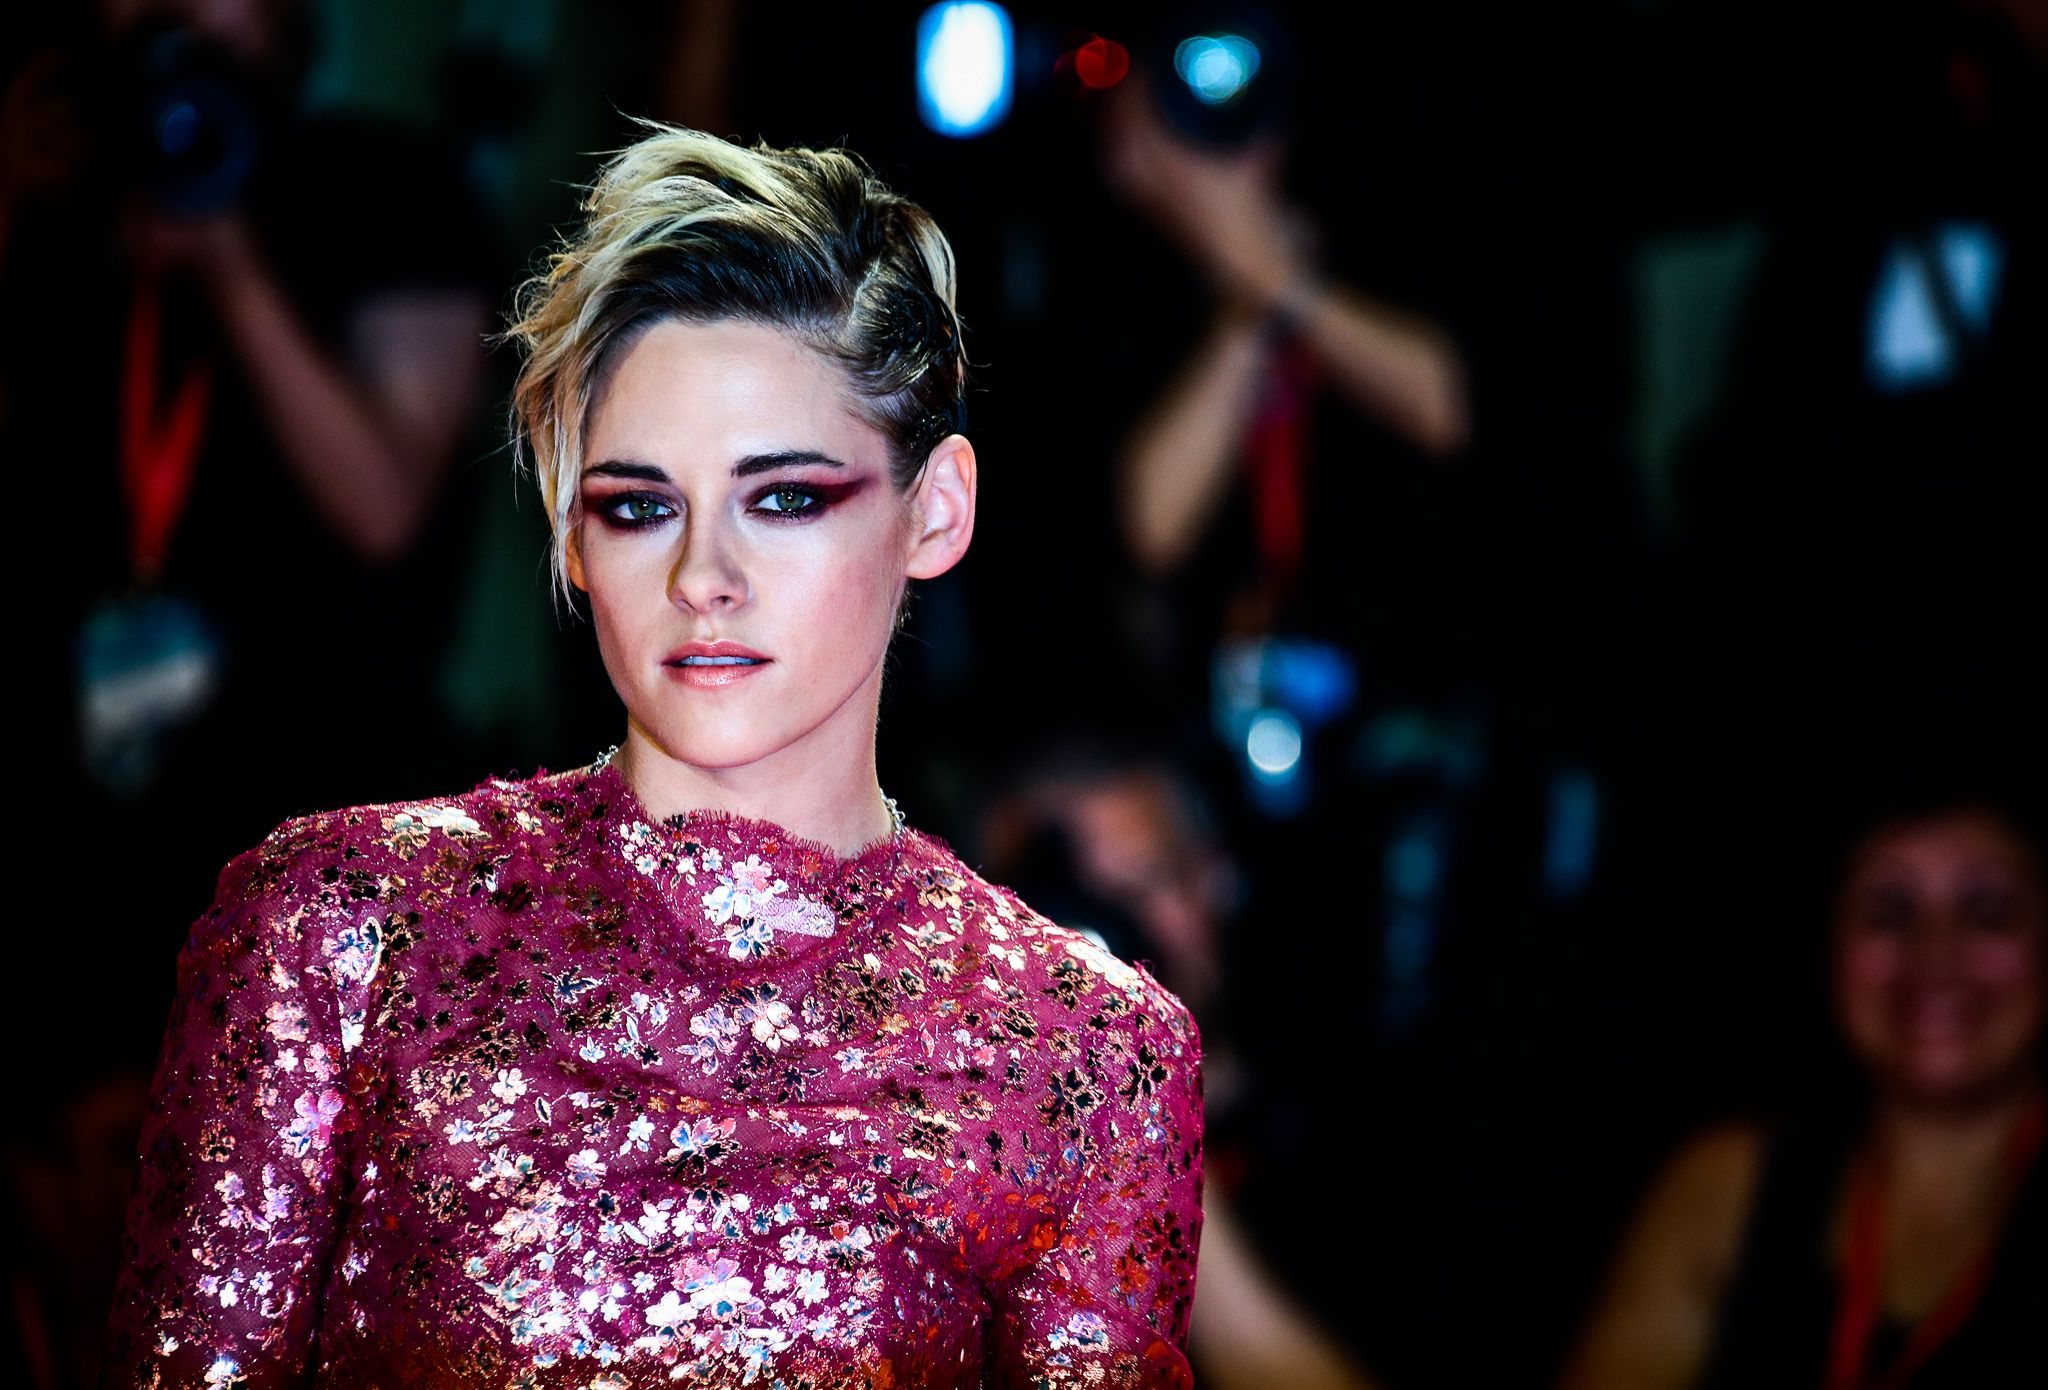 Kristen Stewart's Hair Is Pastel Pink Now and She Looks Stunning